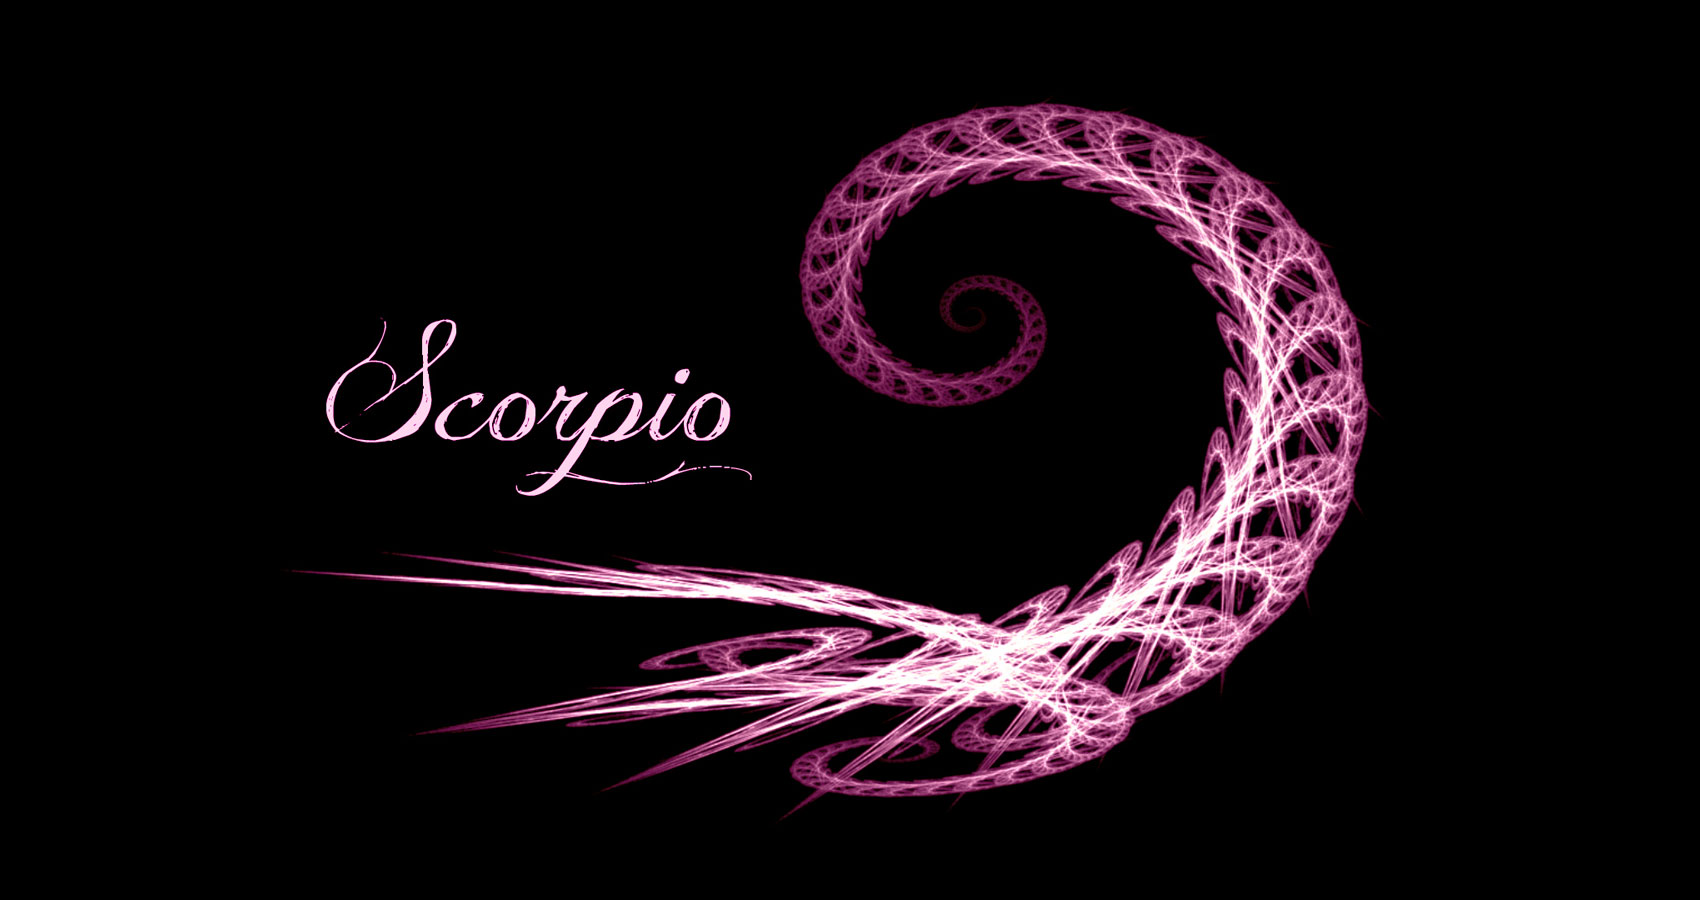 Scorpio written by Taru Of Hearts at Spillwords.com